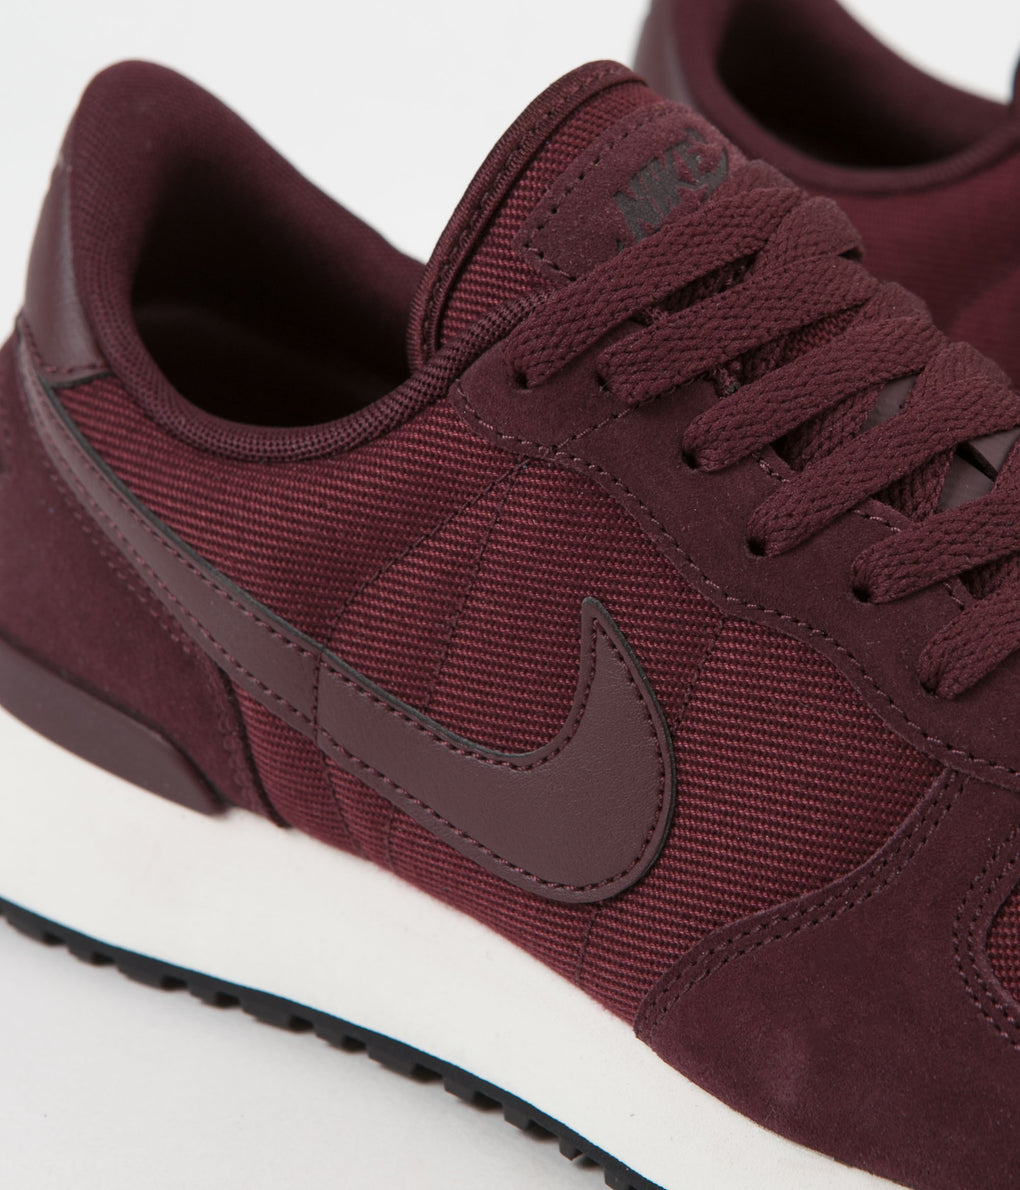 Nike Air Vortex Leather Shoes - Burgundy Crush / Burgundy Crush - Sail - Black